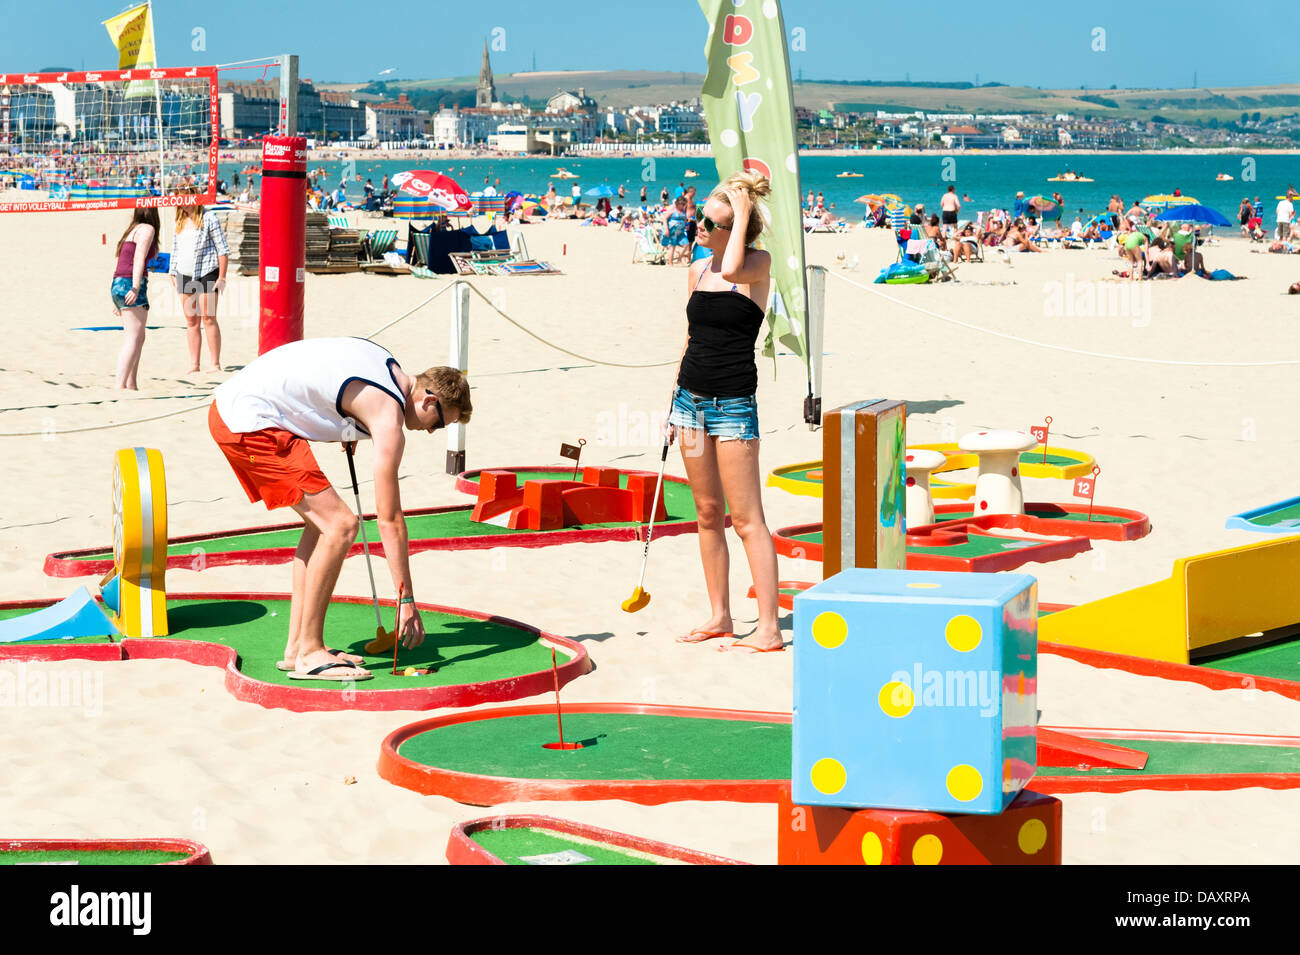 Young couple playing a game of crazy golf on the beach at Weymouth Bay, Dorset, UK. - Stock Image